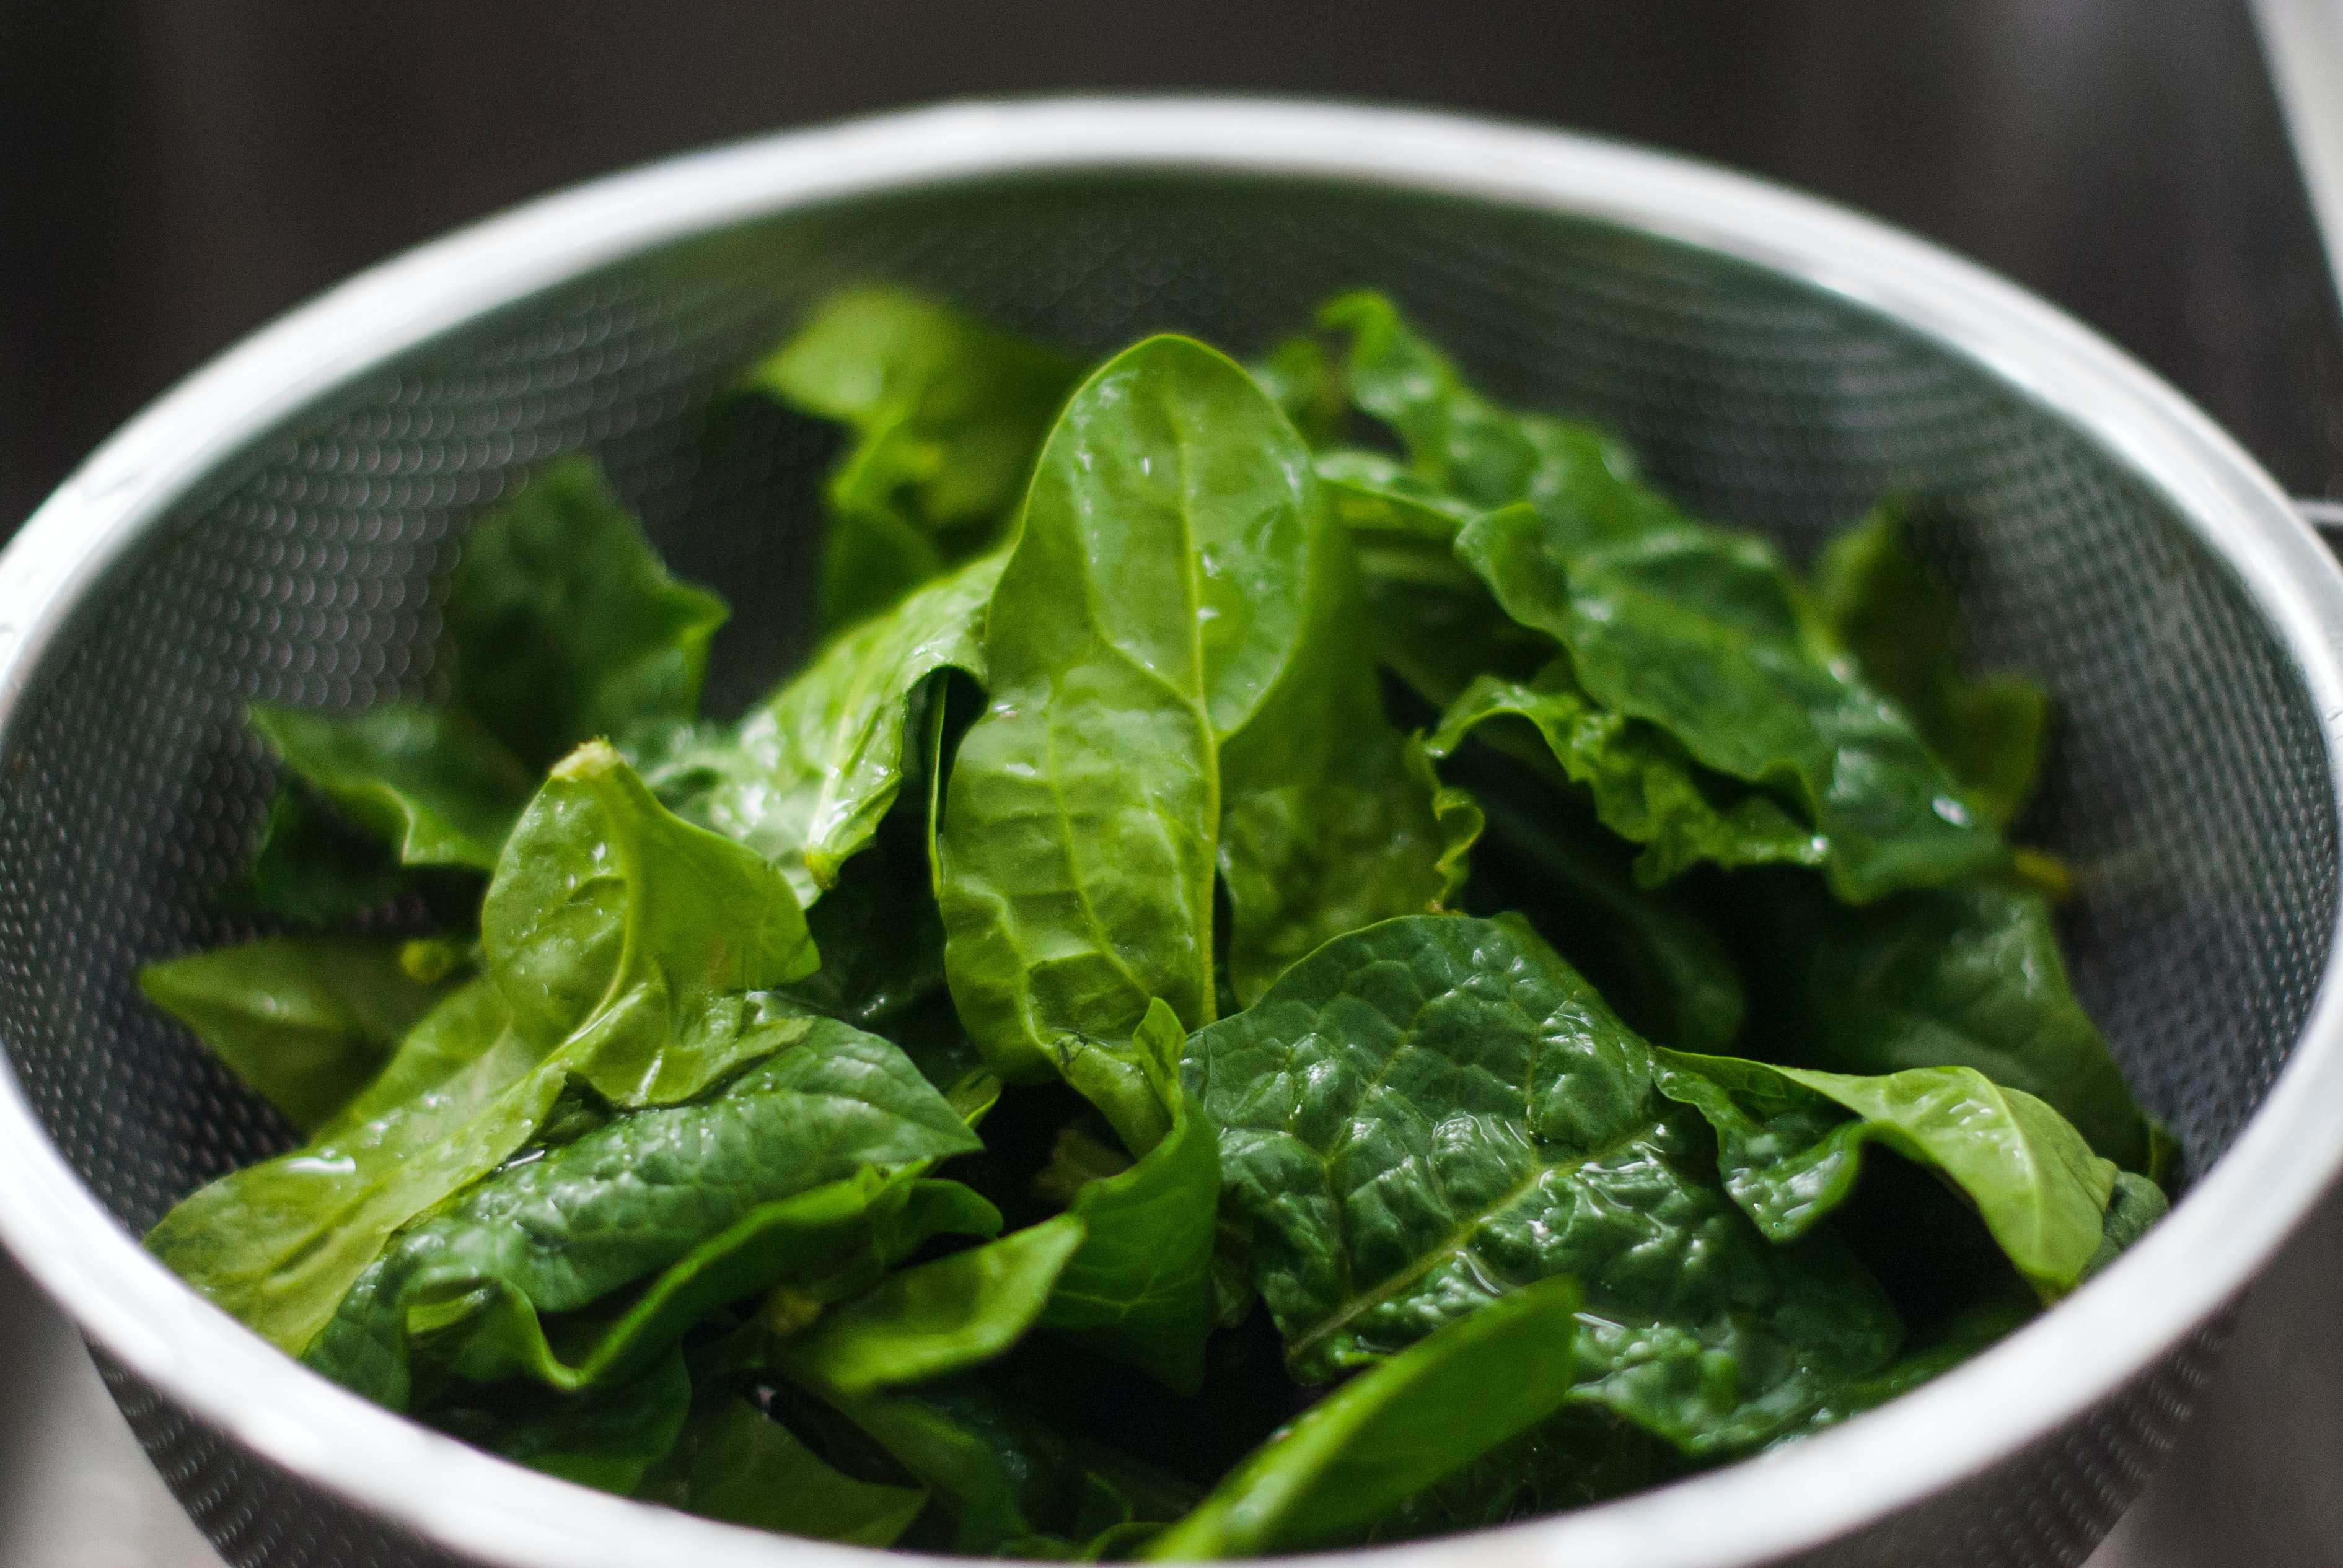 Bowl with spinach.